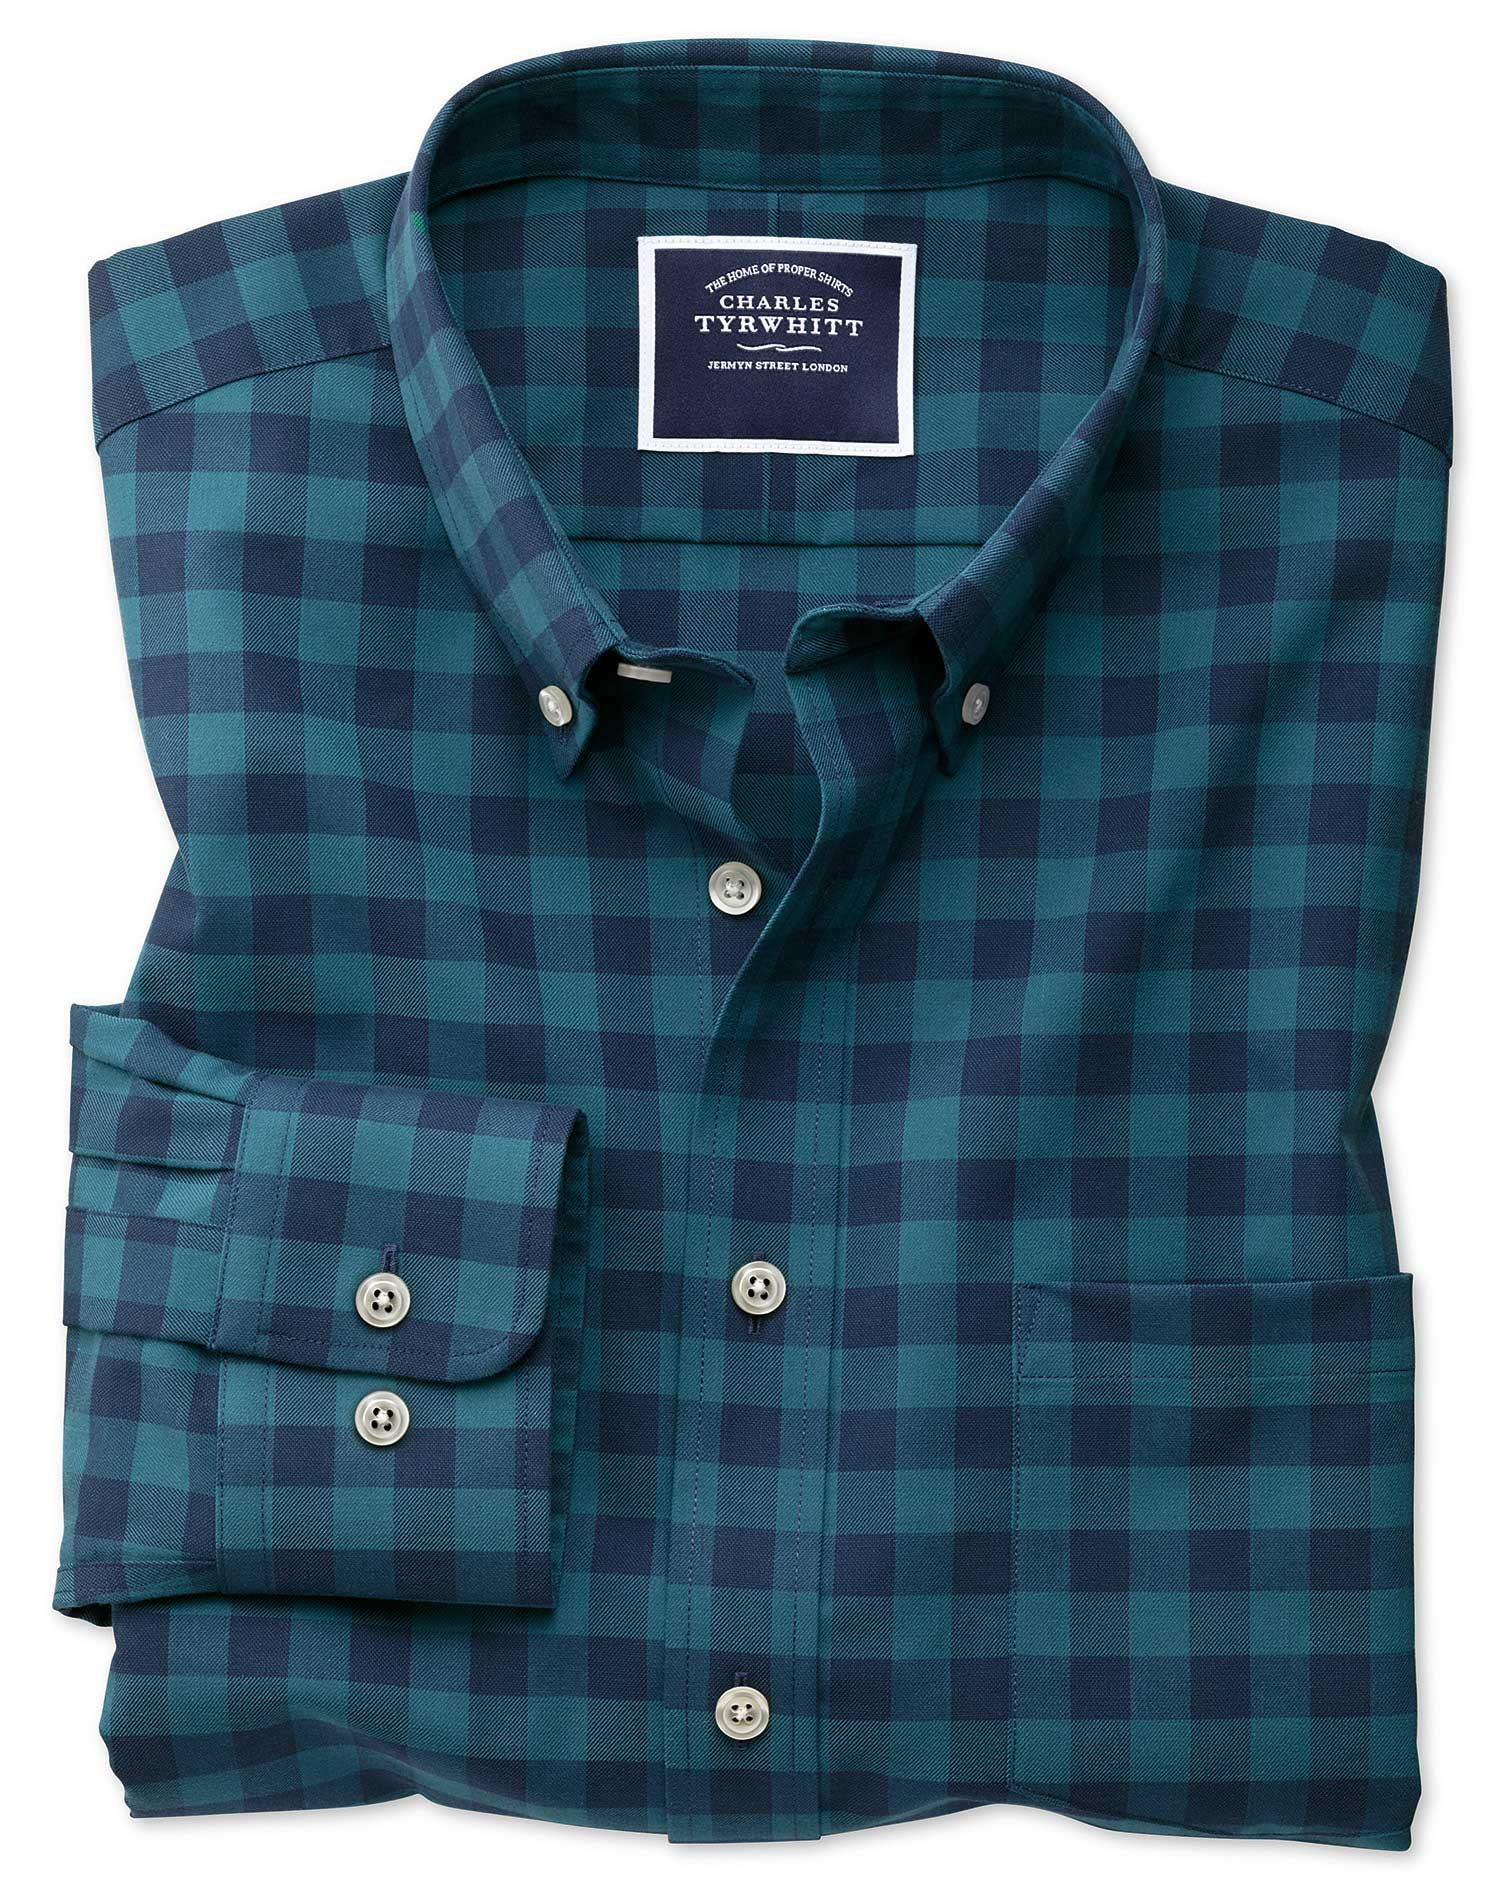 classic fit non-iron button-down teal gingham twill cotton casual shirt single cuff size medium by charles tyrwhitt